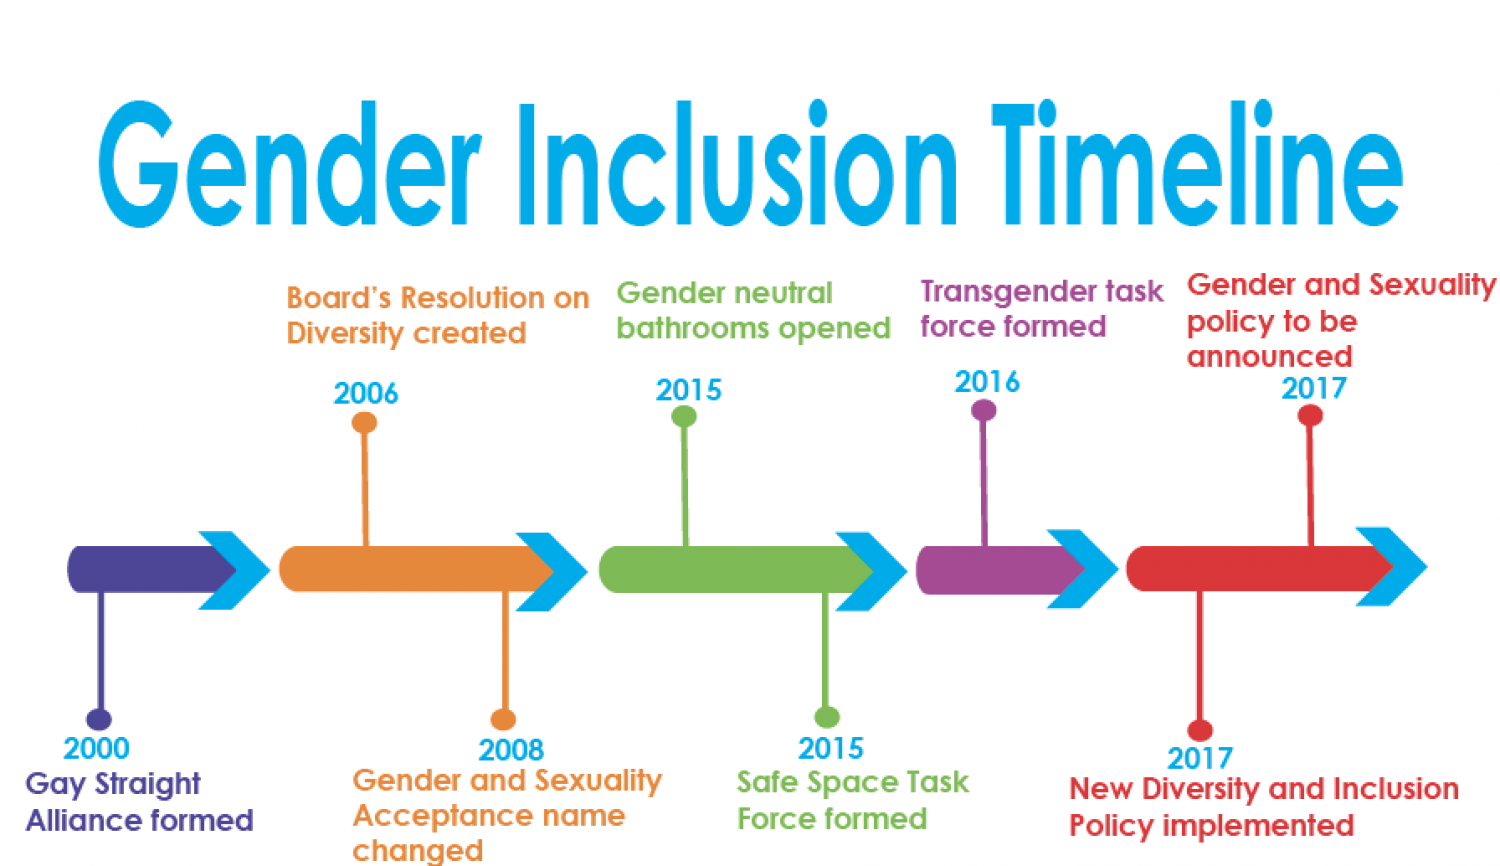 Gender and sexuality acceptance and celebration isn't a new phenomenon at SPA. Actions towards more inclusion in recent years reflect an  increase in feeling comfortable with gender identity.